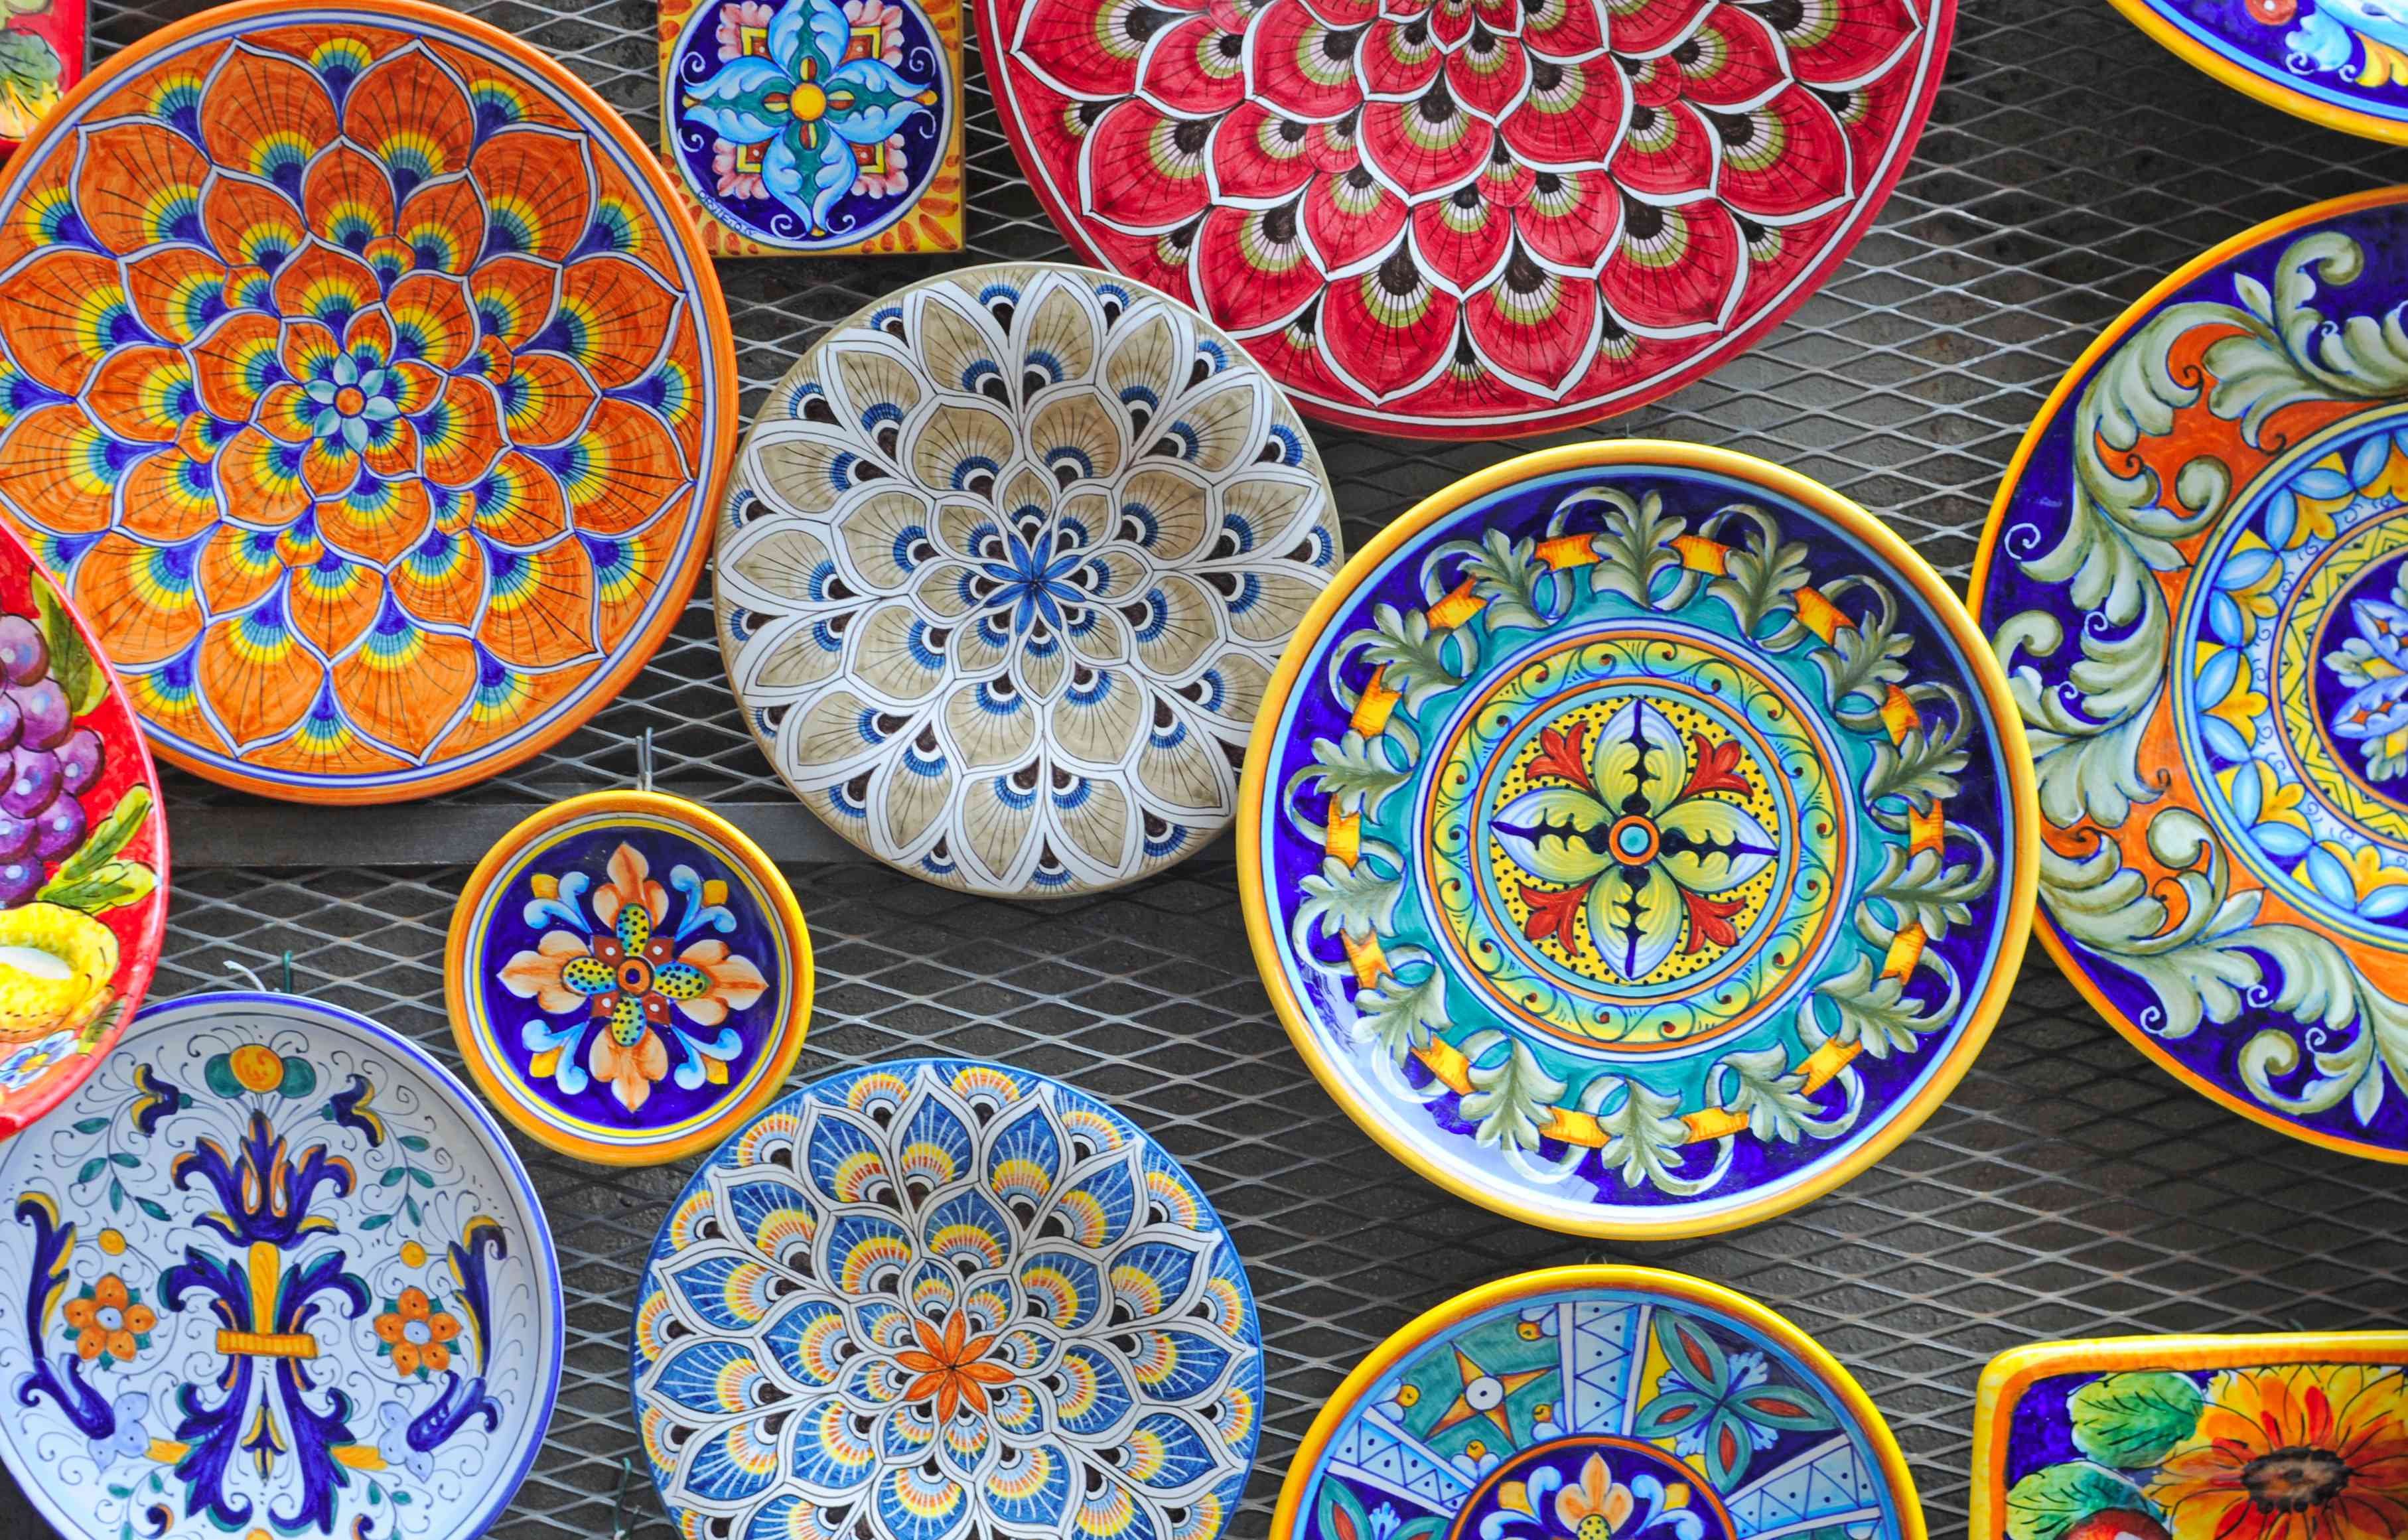 Painted ceramic dishes from Tuscany